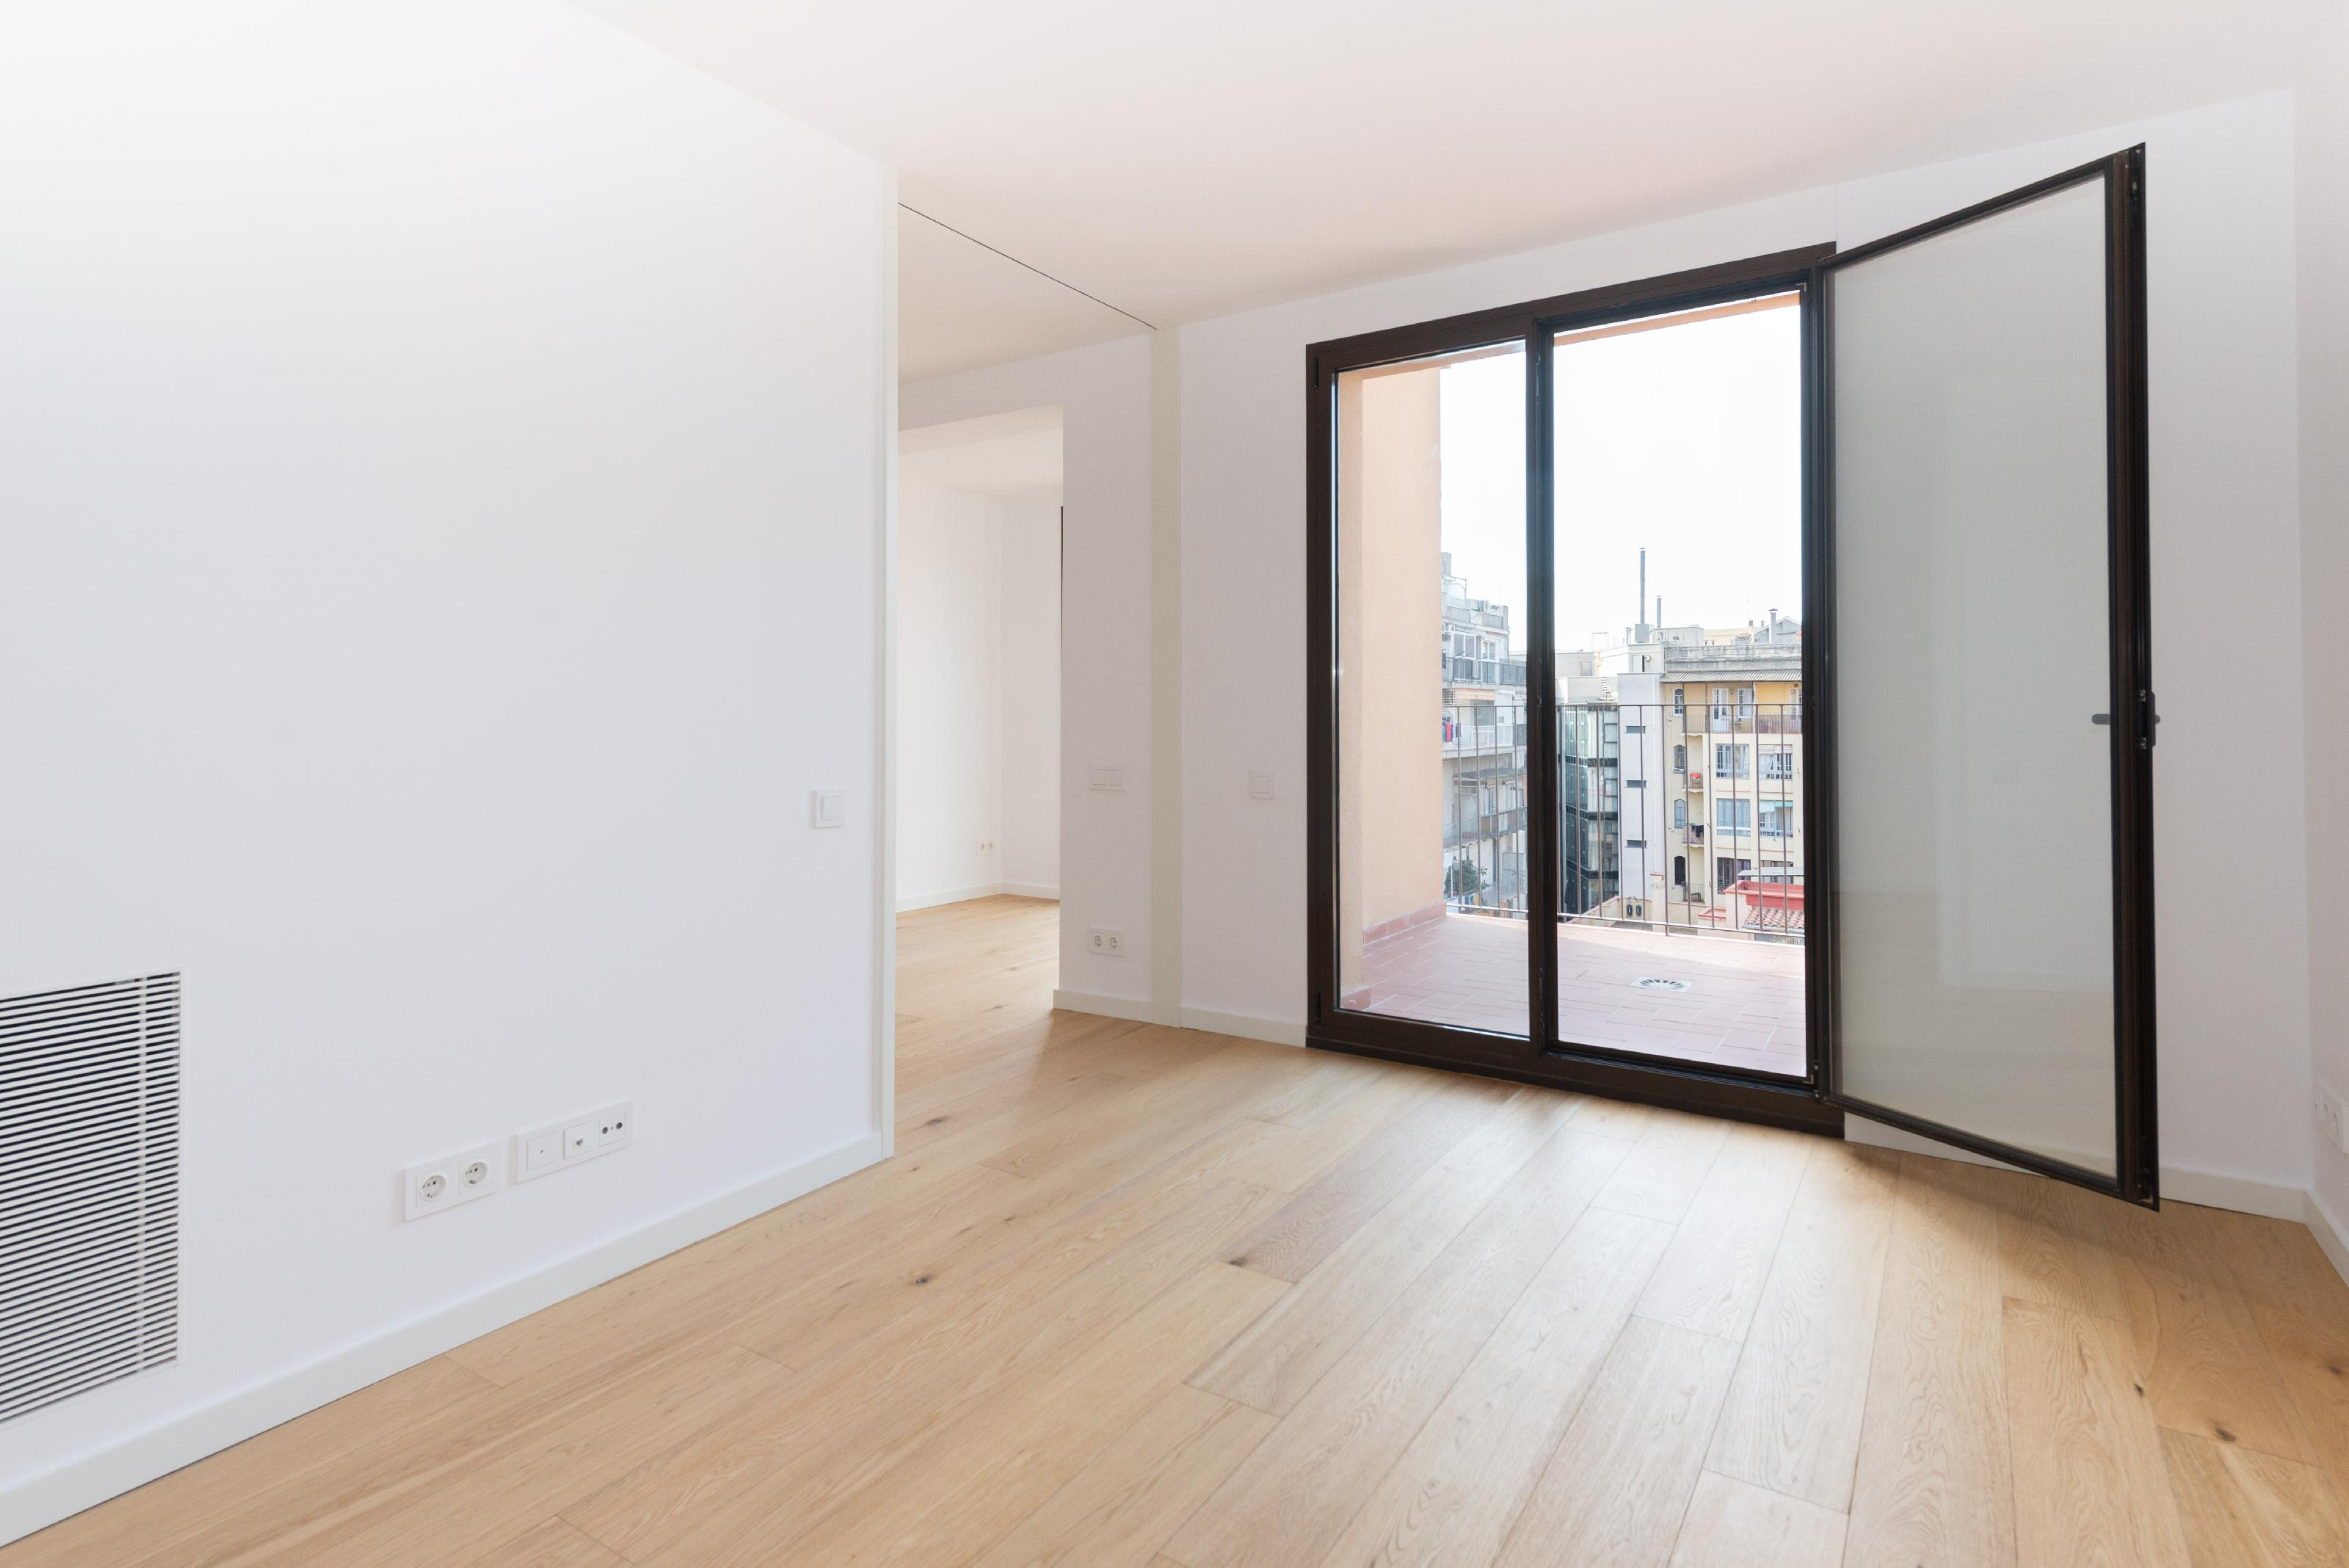 216125 Apartment for sale in Eixample, Old Left Eixample 12